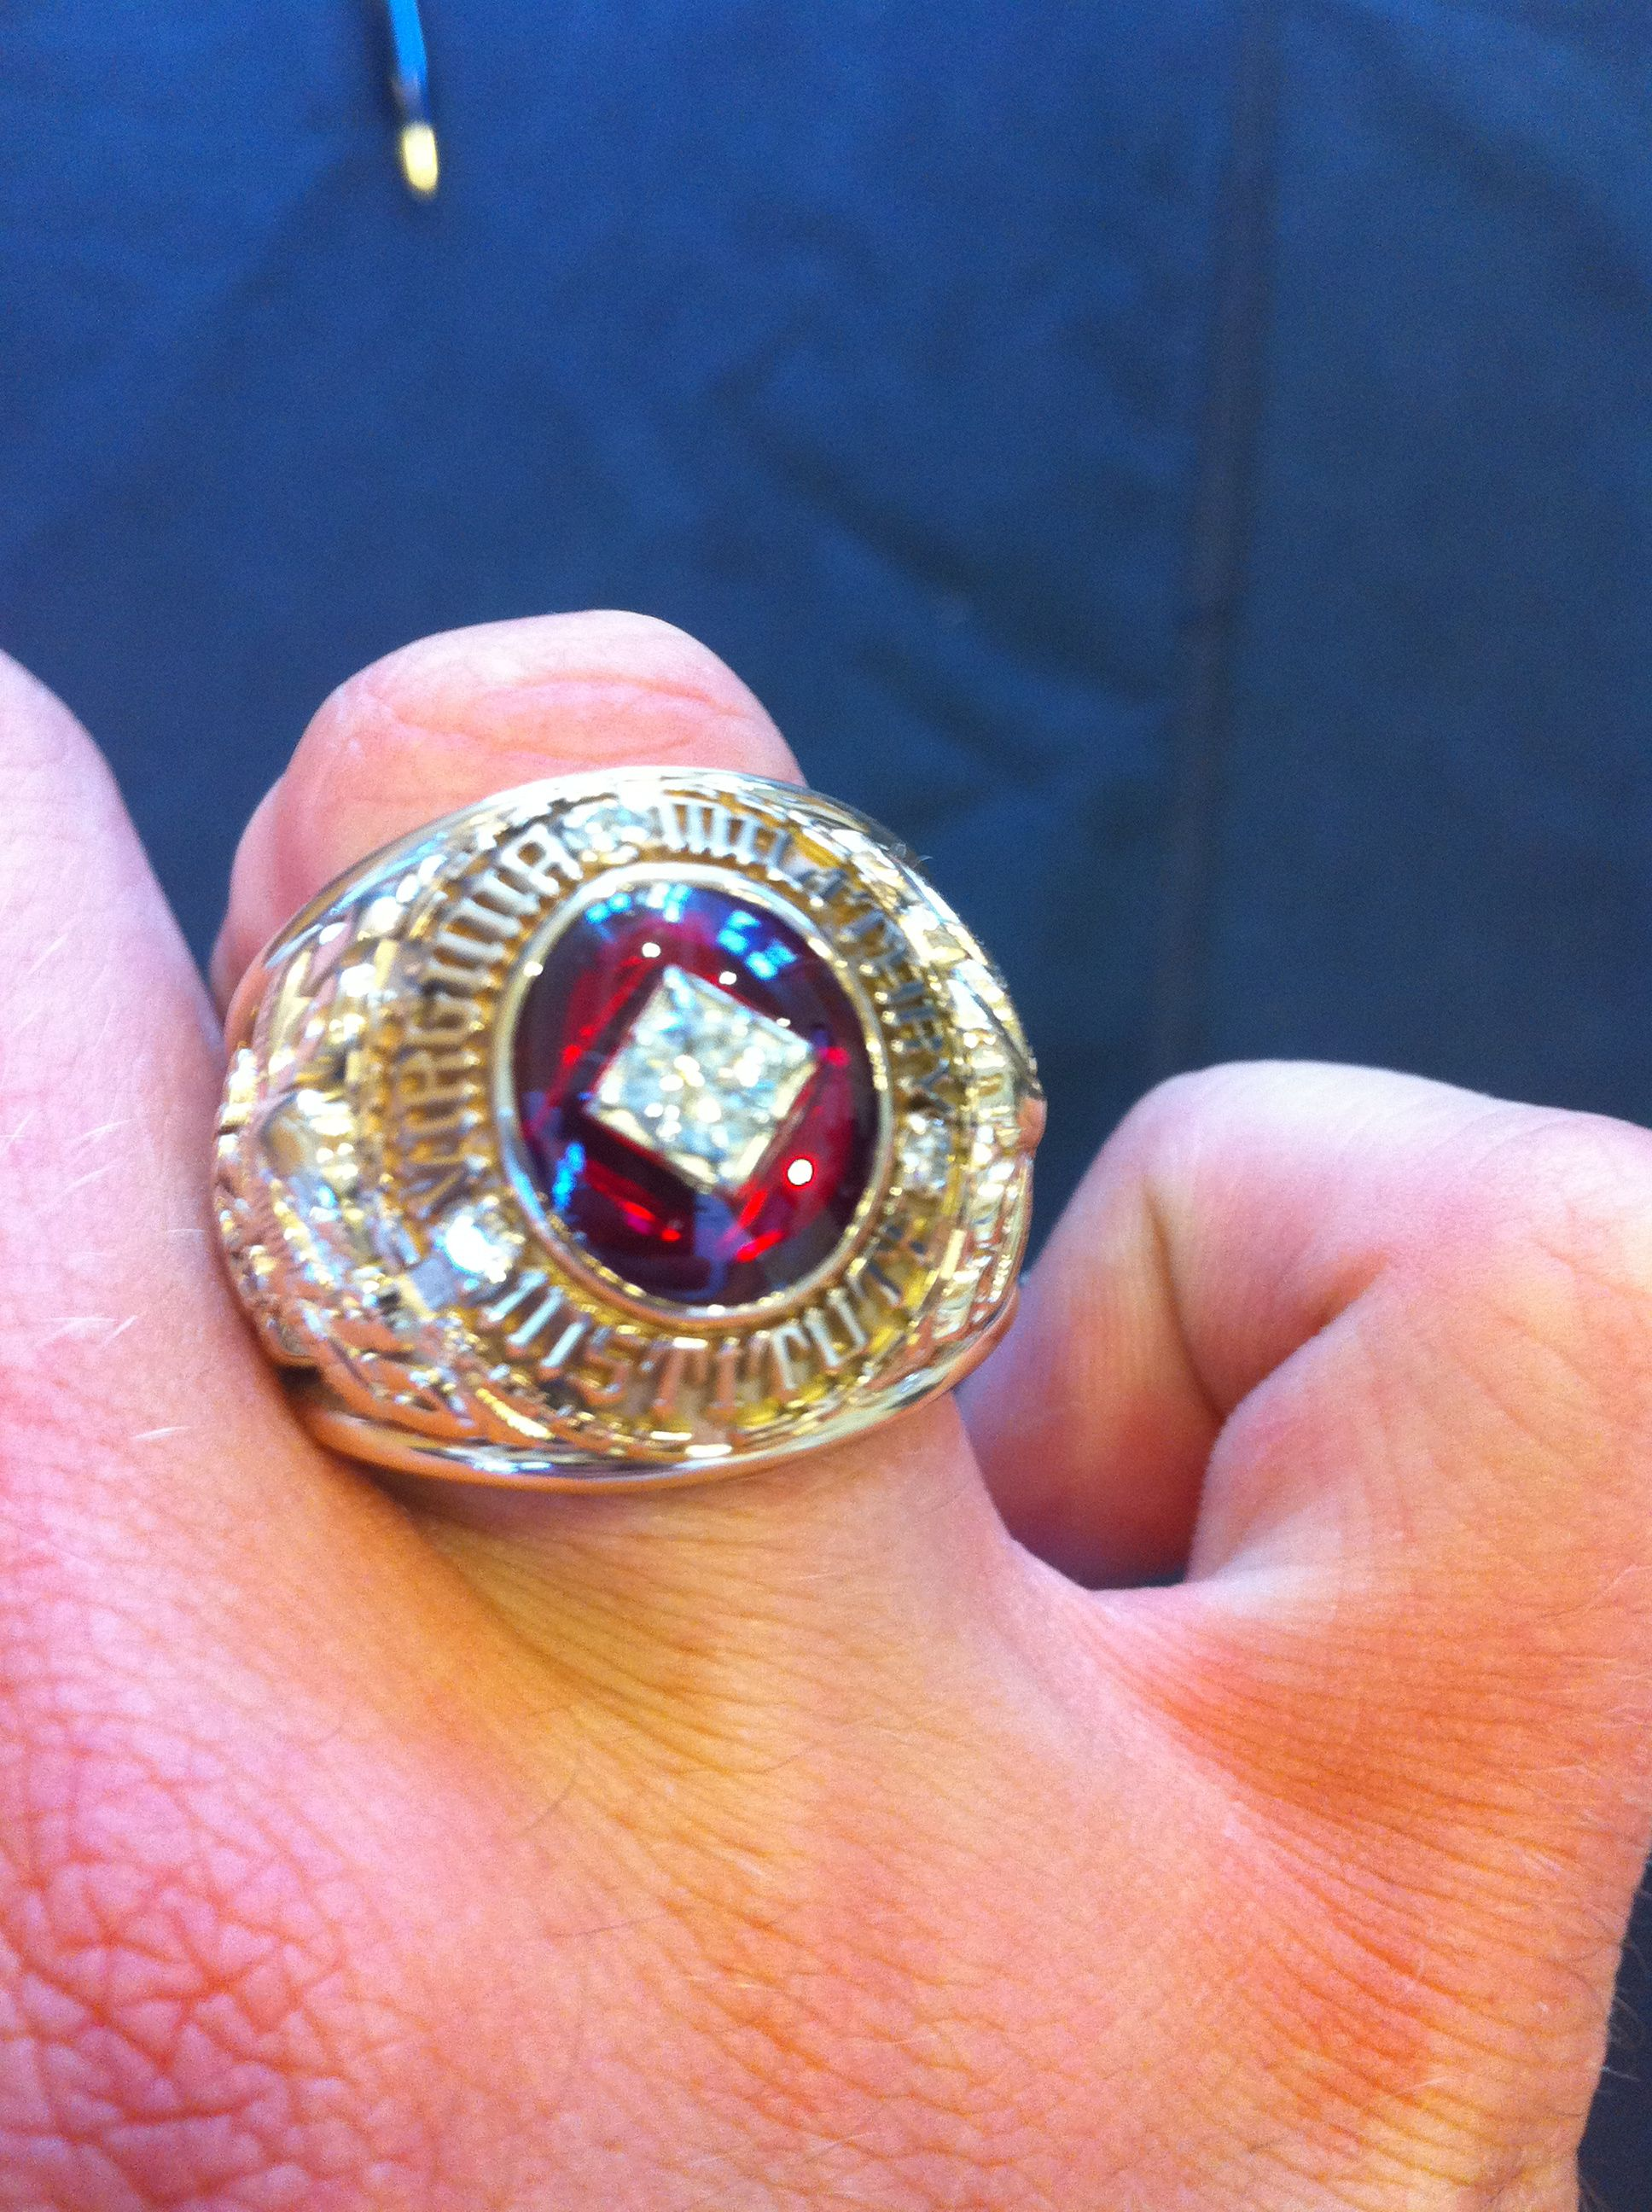 Vmi Class Of 2012 Ring  Among The Biggest (if Not The